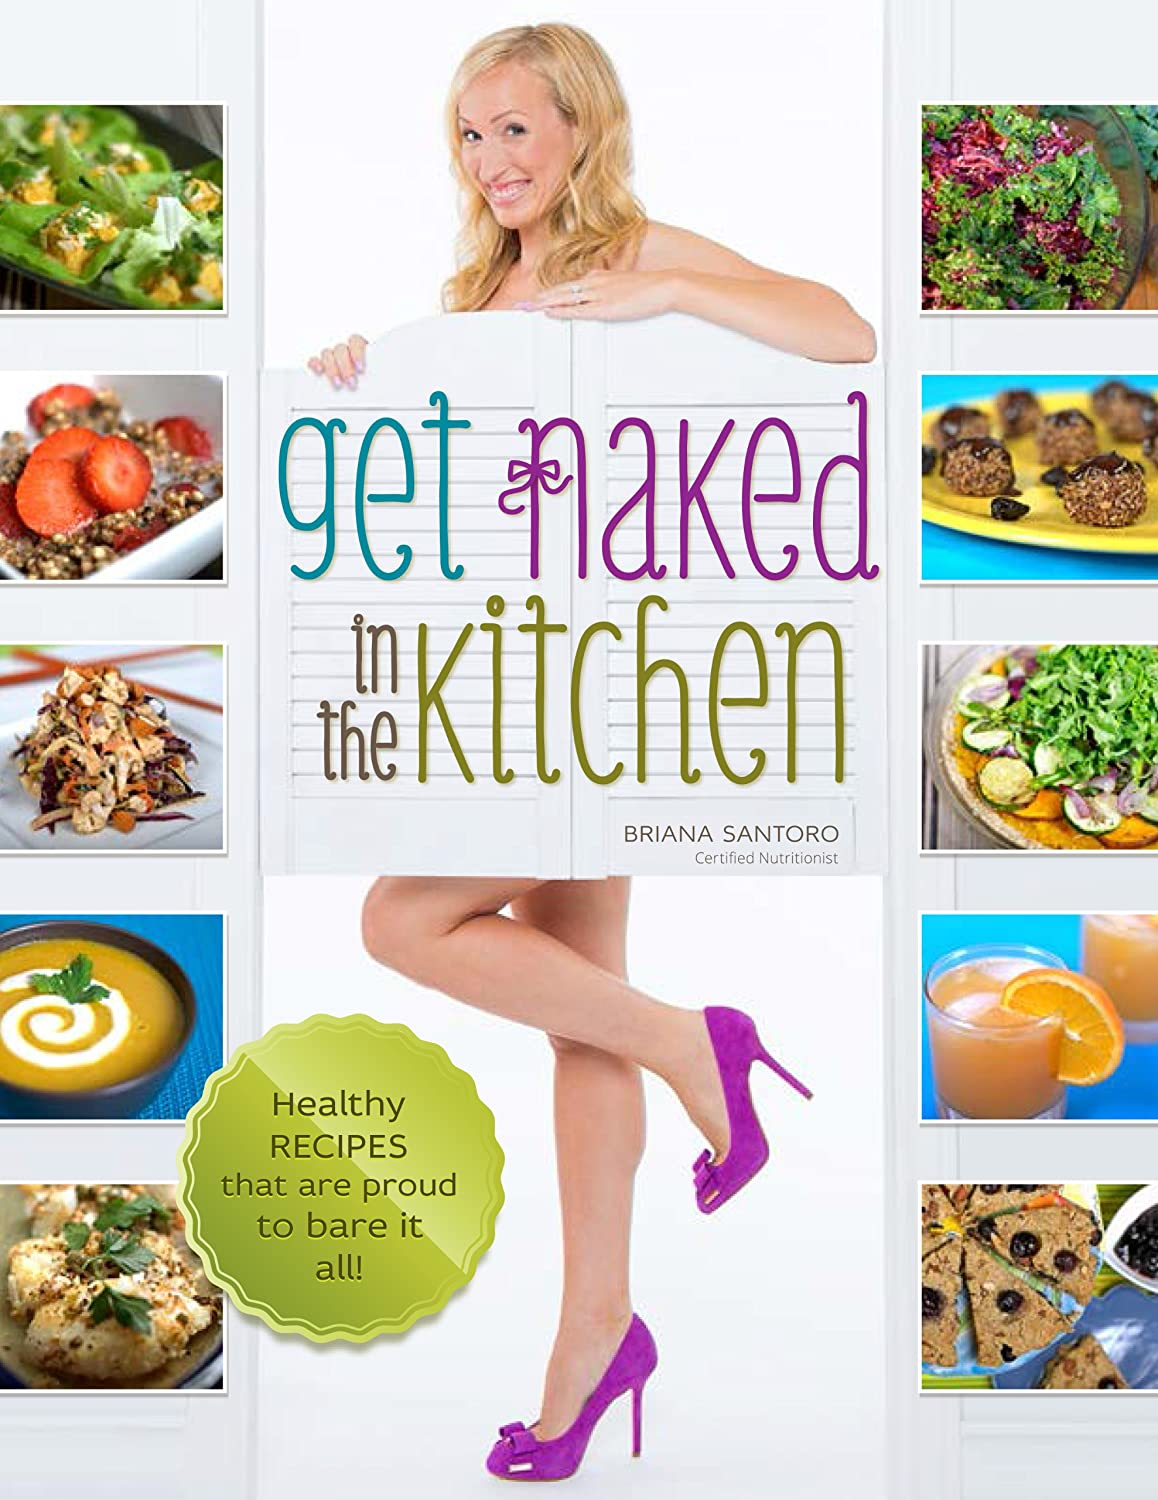 Get Naked in the Kitchen: Healthy Recipes That Are Proud To Bare It All - Briana Santoro